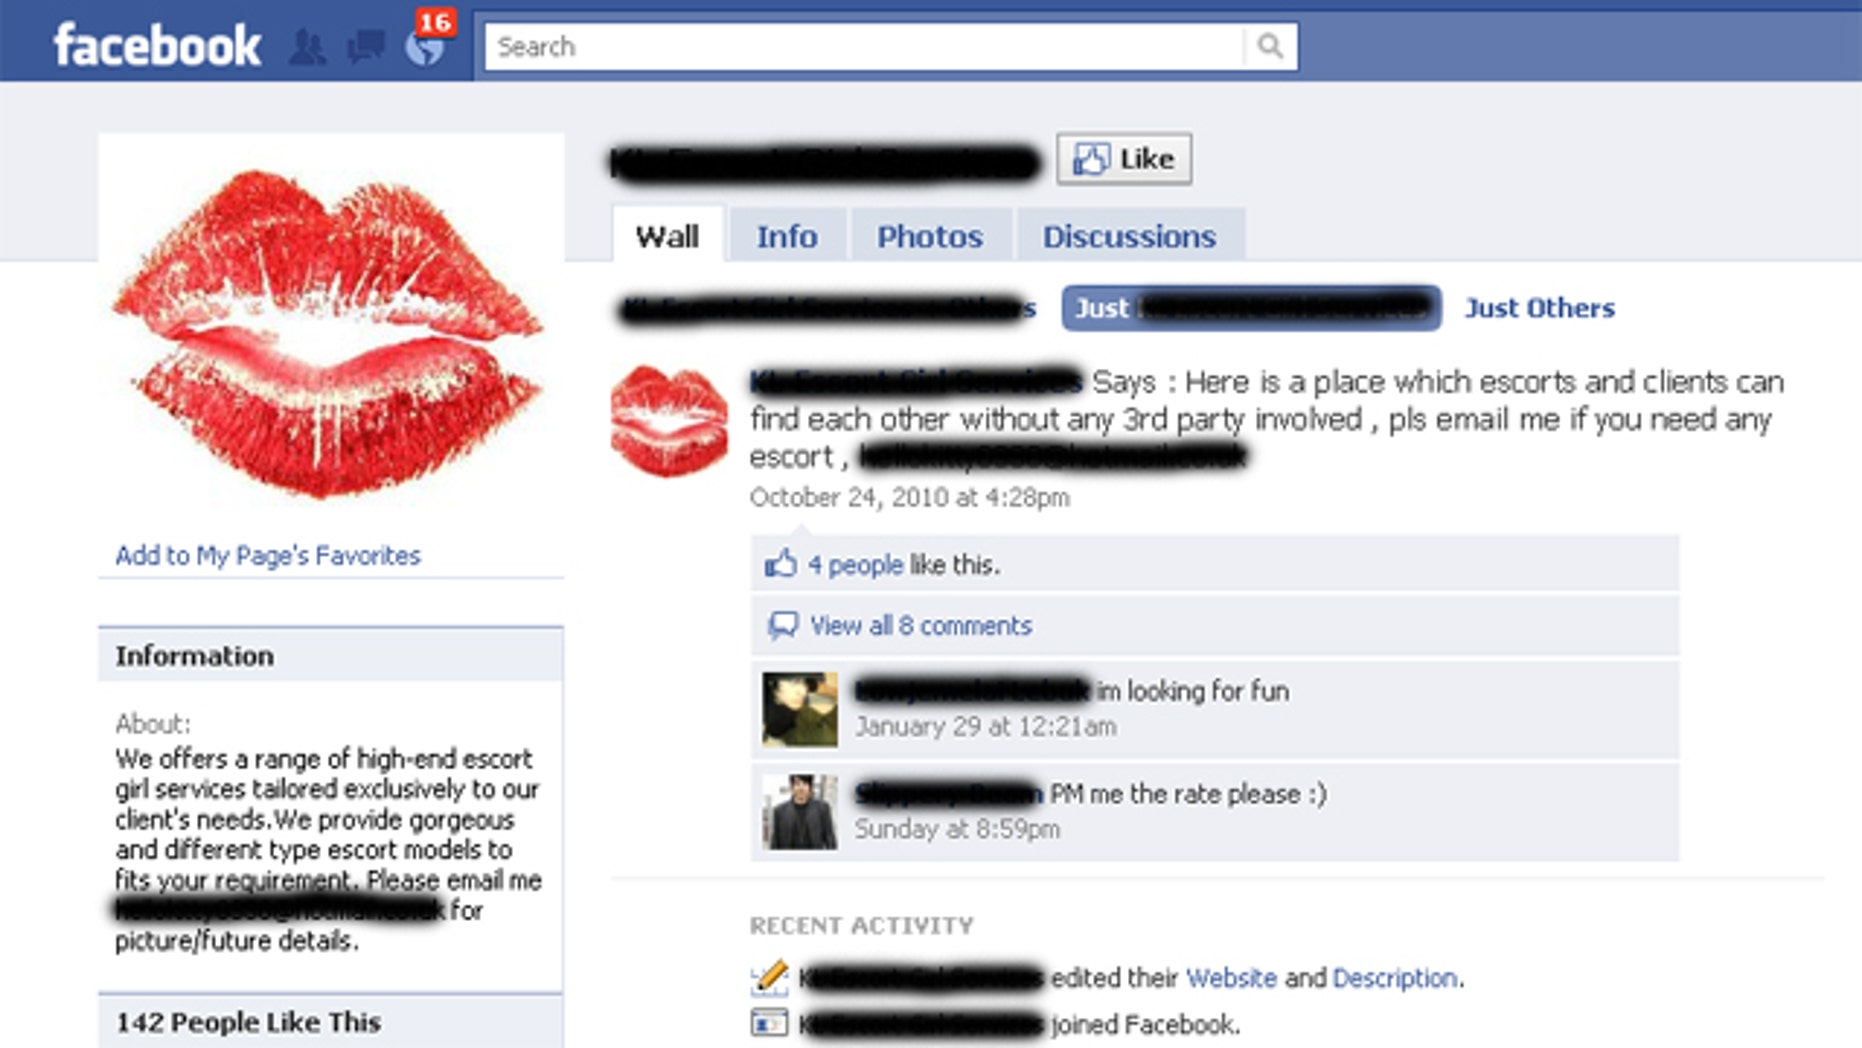 Facebook is becoming a hotspot for illicit adult entertainment.